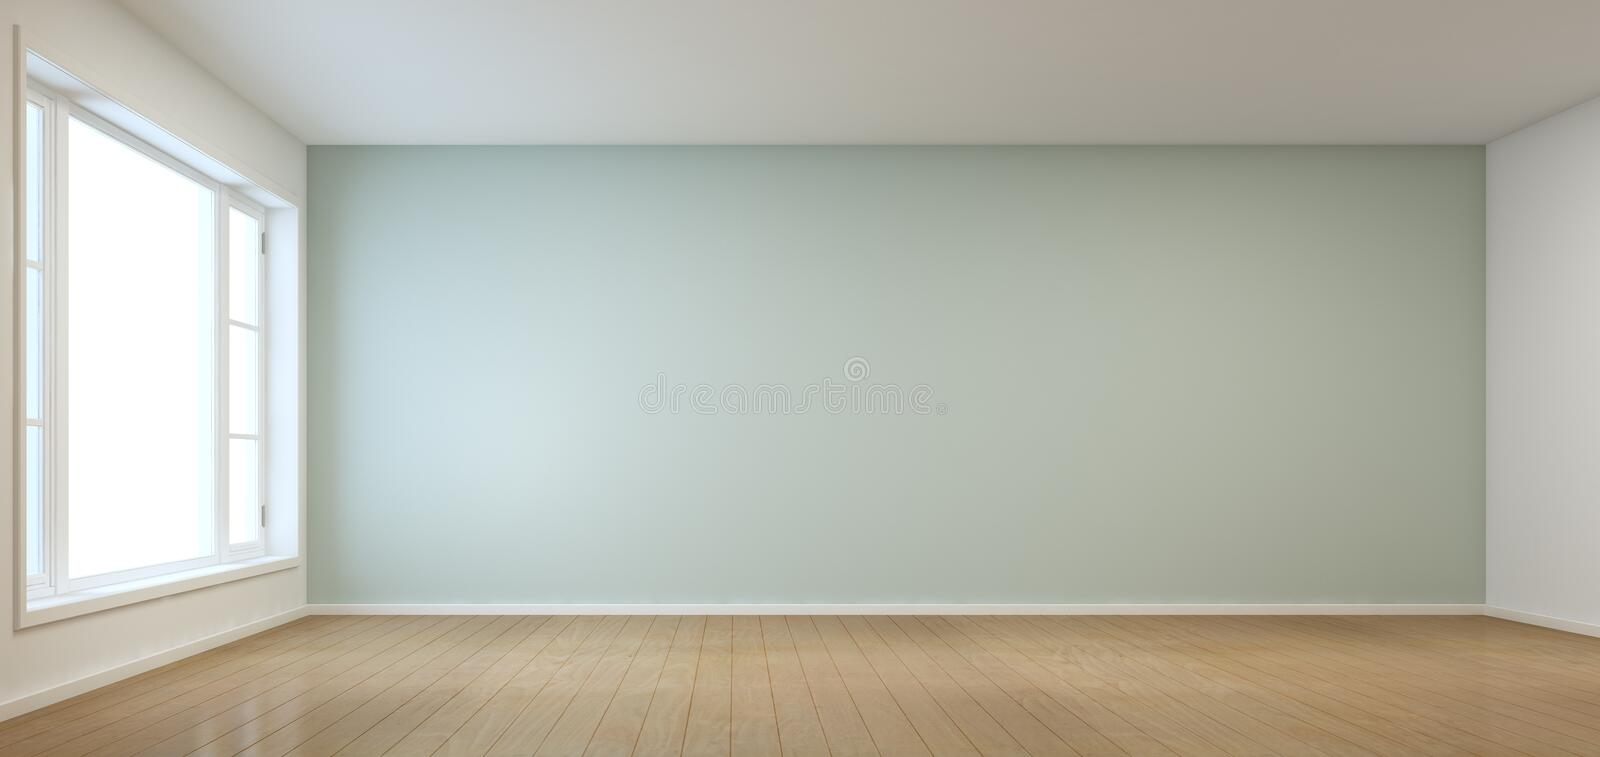 Empty Room With Window In Modern House Stock Photo Image